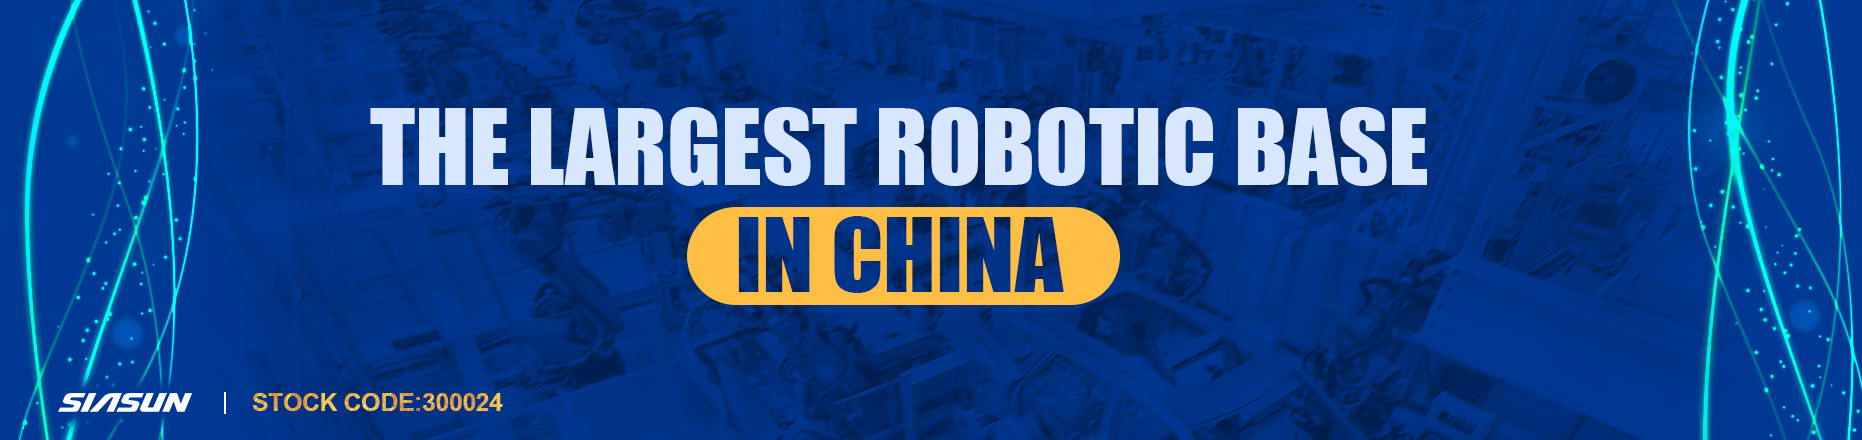 the largest robotic base in china